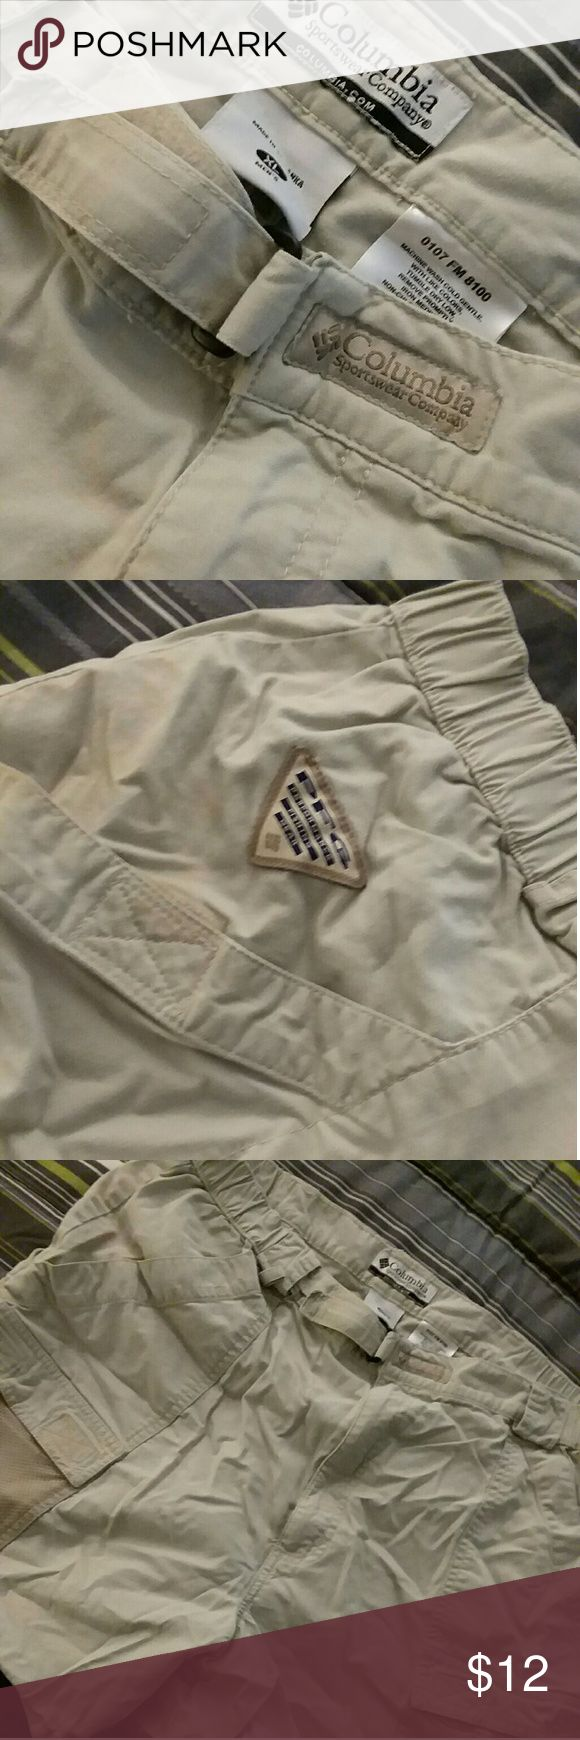 Columbia PFG Fishing Shorts Performance Fishing Gear by Columbia. Quality and Performance all rolled into one mean pair of shorts. Designed to handle everything the avid fisherman can throw at them. Great Condition, worn once. Columbia Shorts Cargo